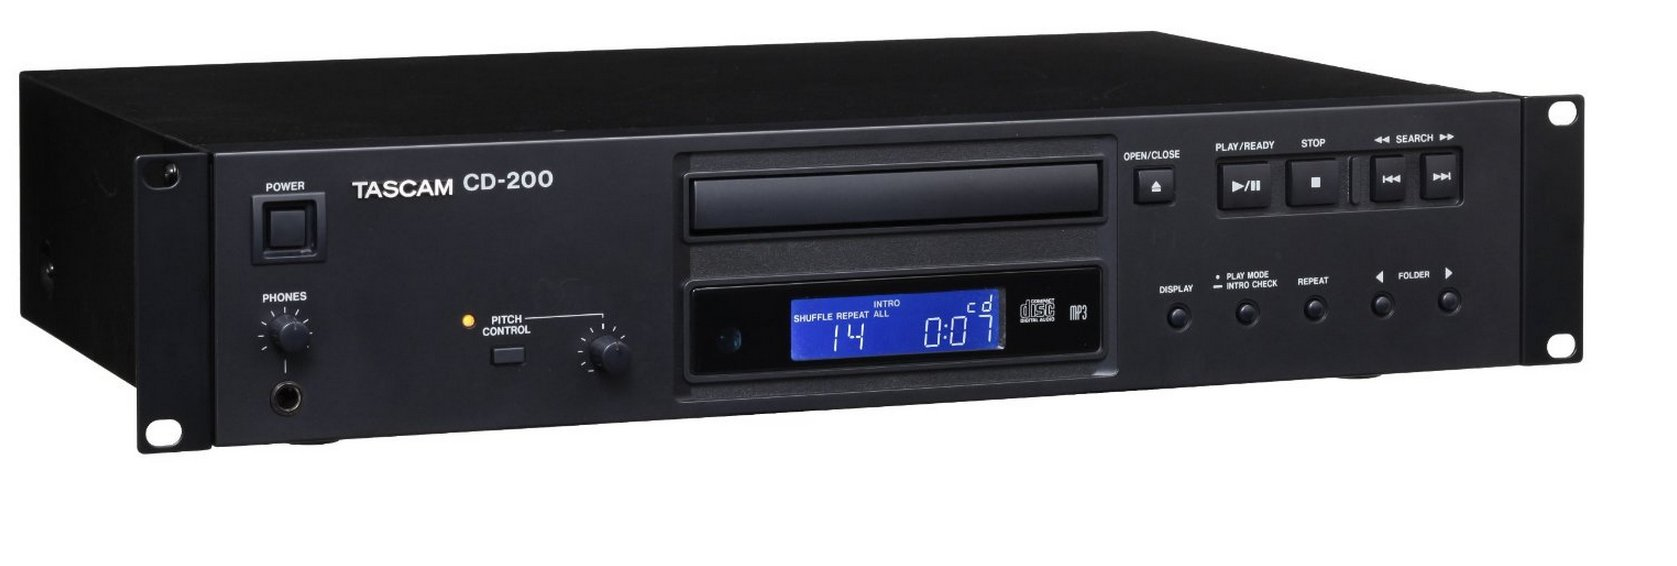 Tascam CD-200 CD player Personal CD player Black